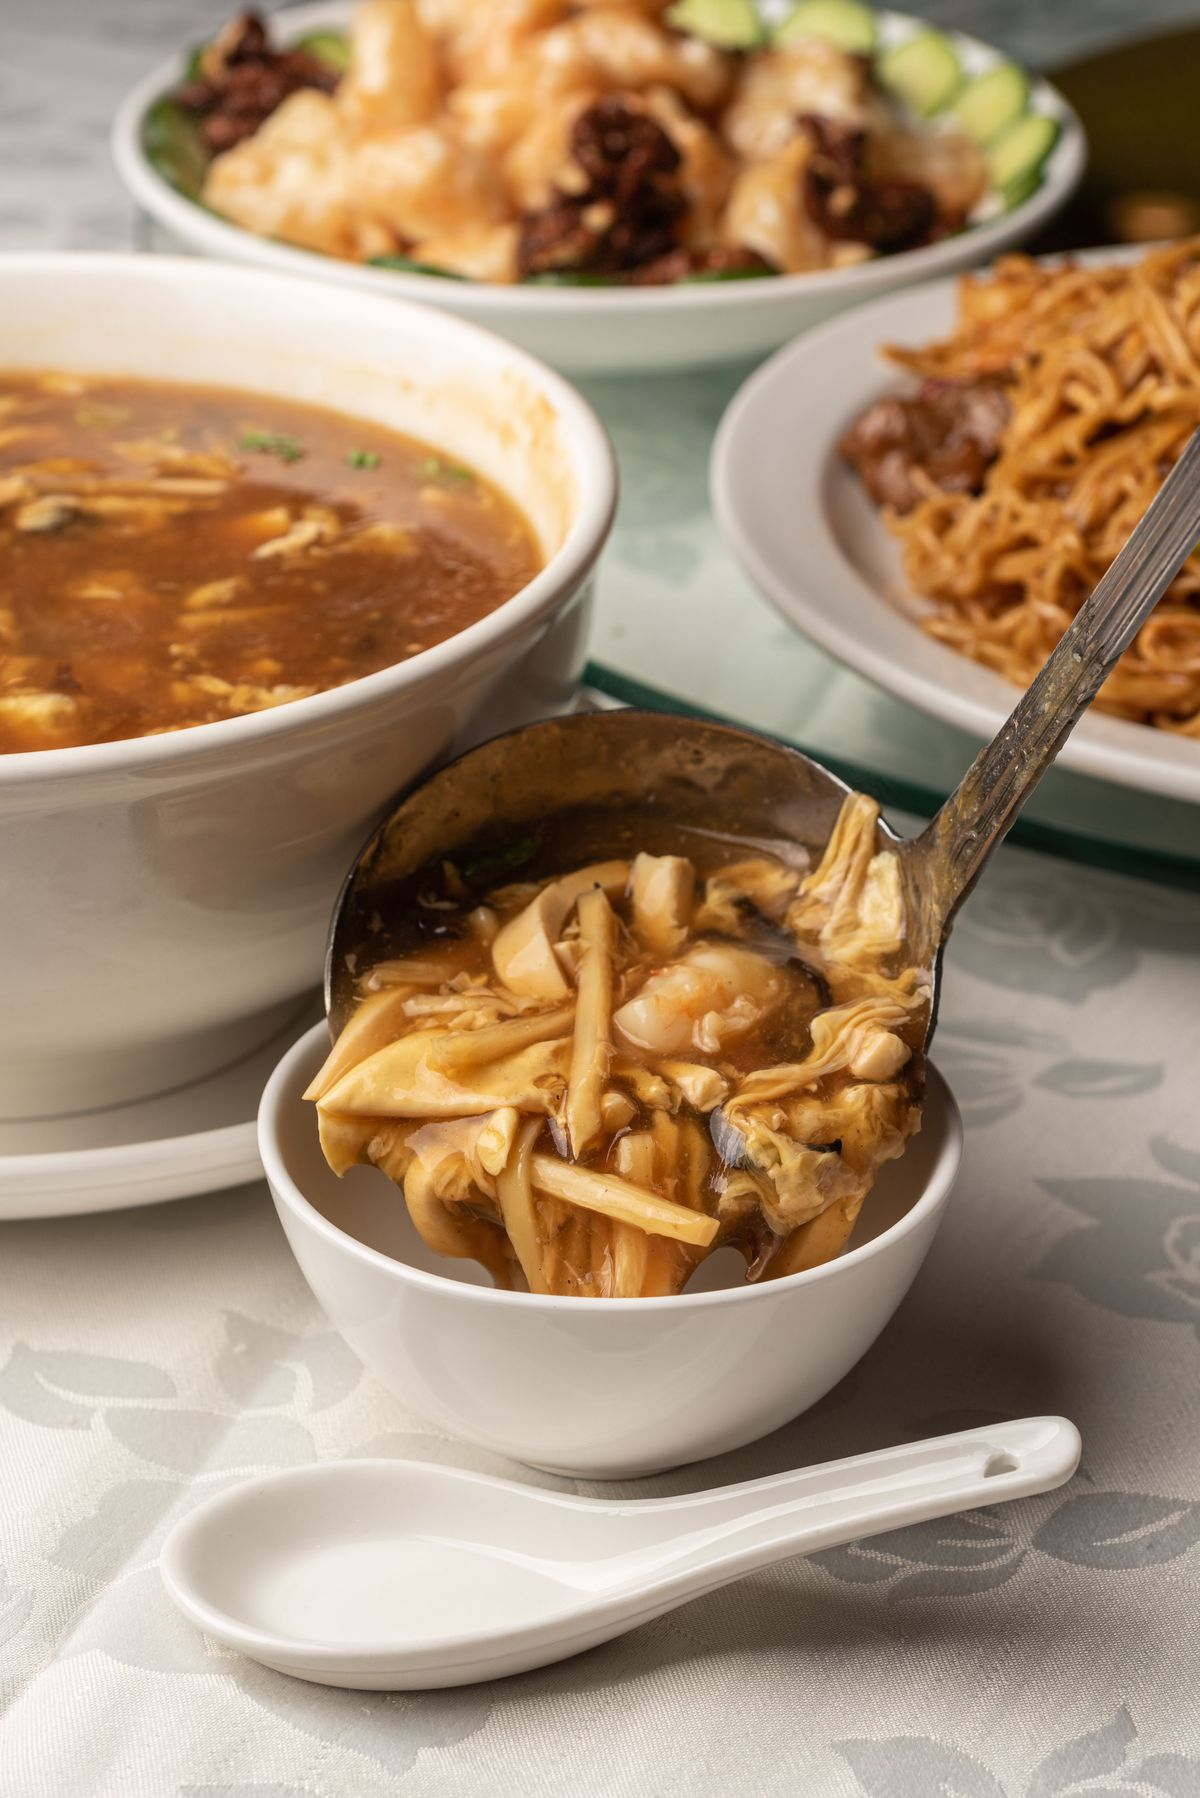 A ladle of hot and sour soup brimming with tofu and mushrooms.